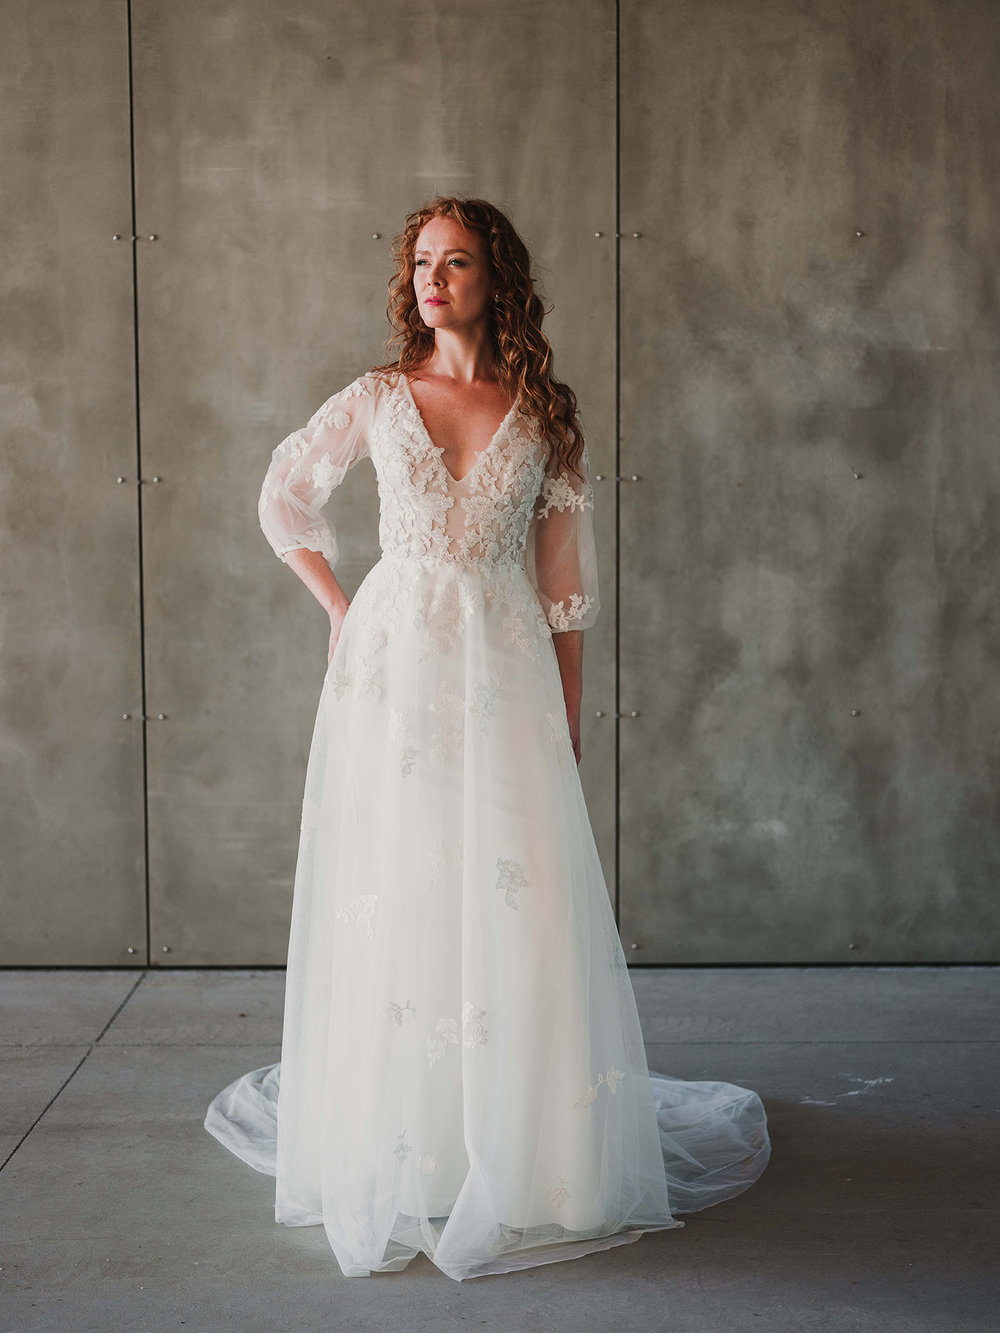 withoverskirt_Rebecca_Schoneveld_Beau_Gown_Removable_Overskirt_romantic_clean_gown_applique_Tulle_crepe_juliet_sleeve.jpg